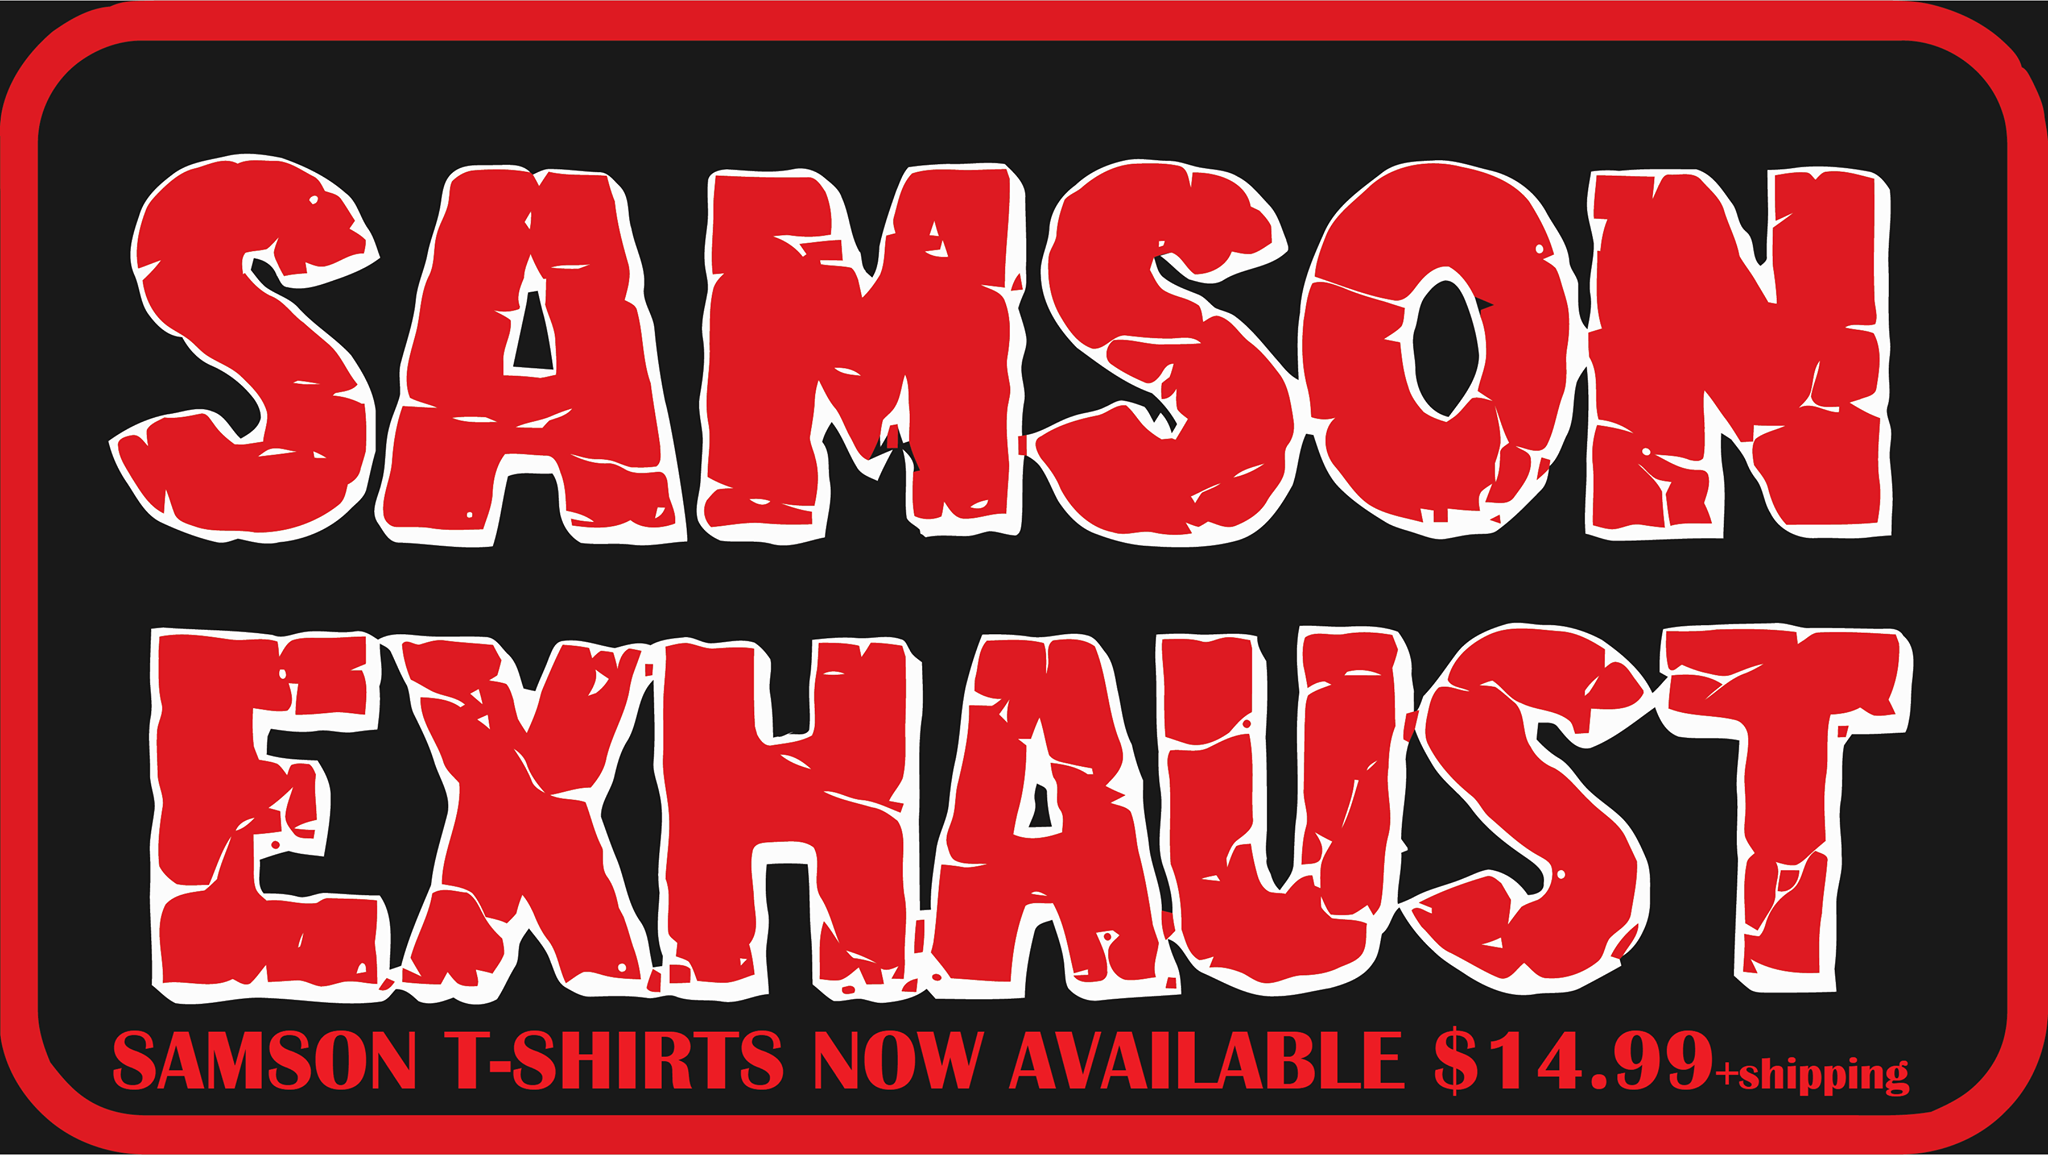 Samson T-Shirts Now Available Free With Purchase of $500 or More!